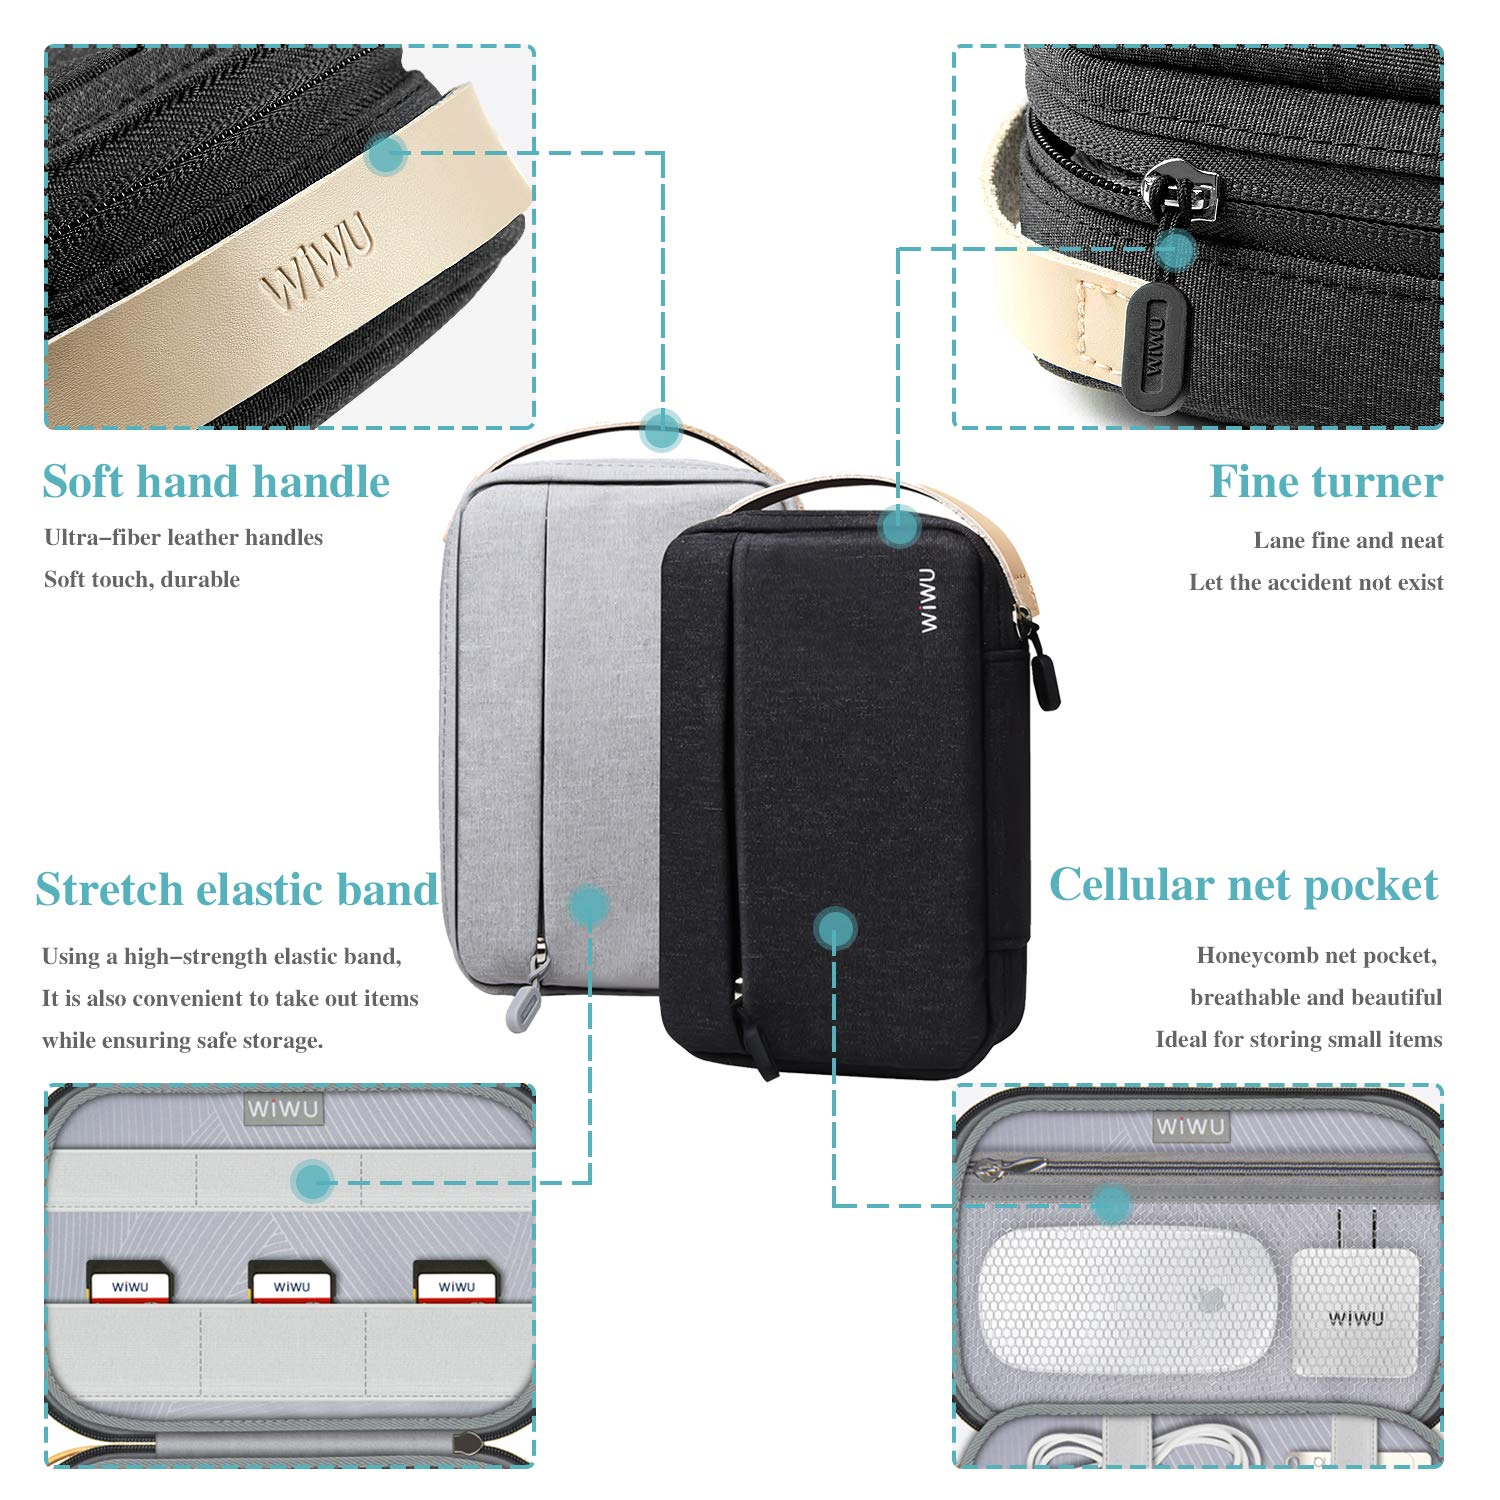 Mega organizer, WiWU Cable Organizer, Electronic Accessories Organiser